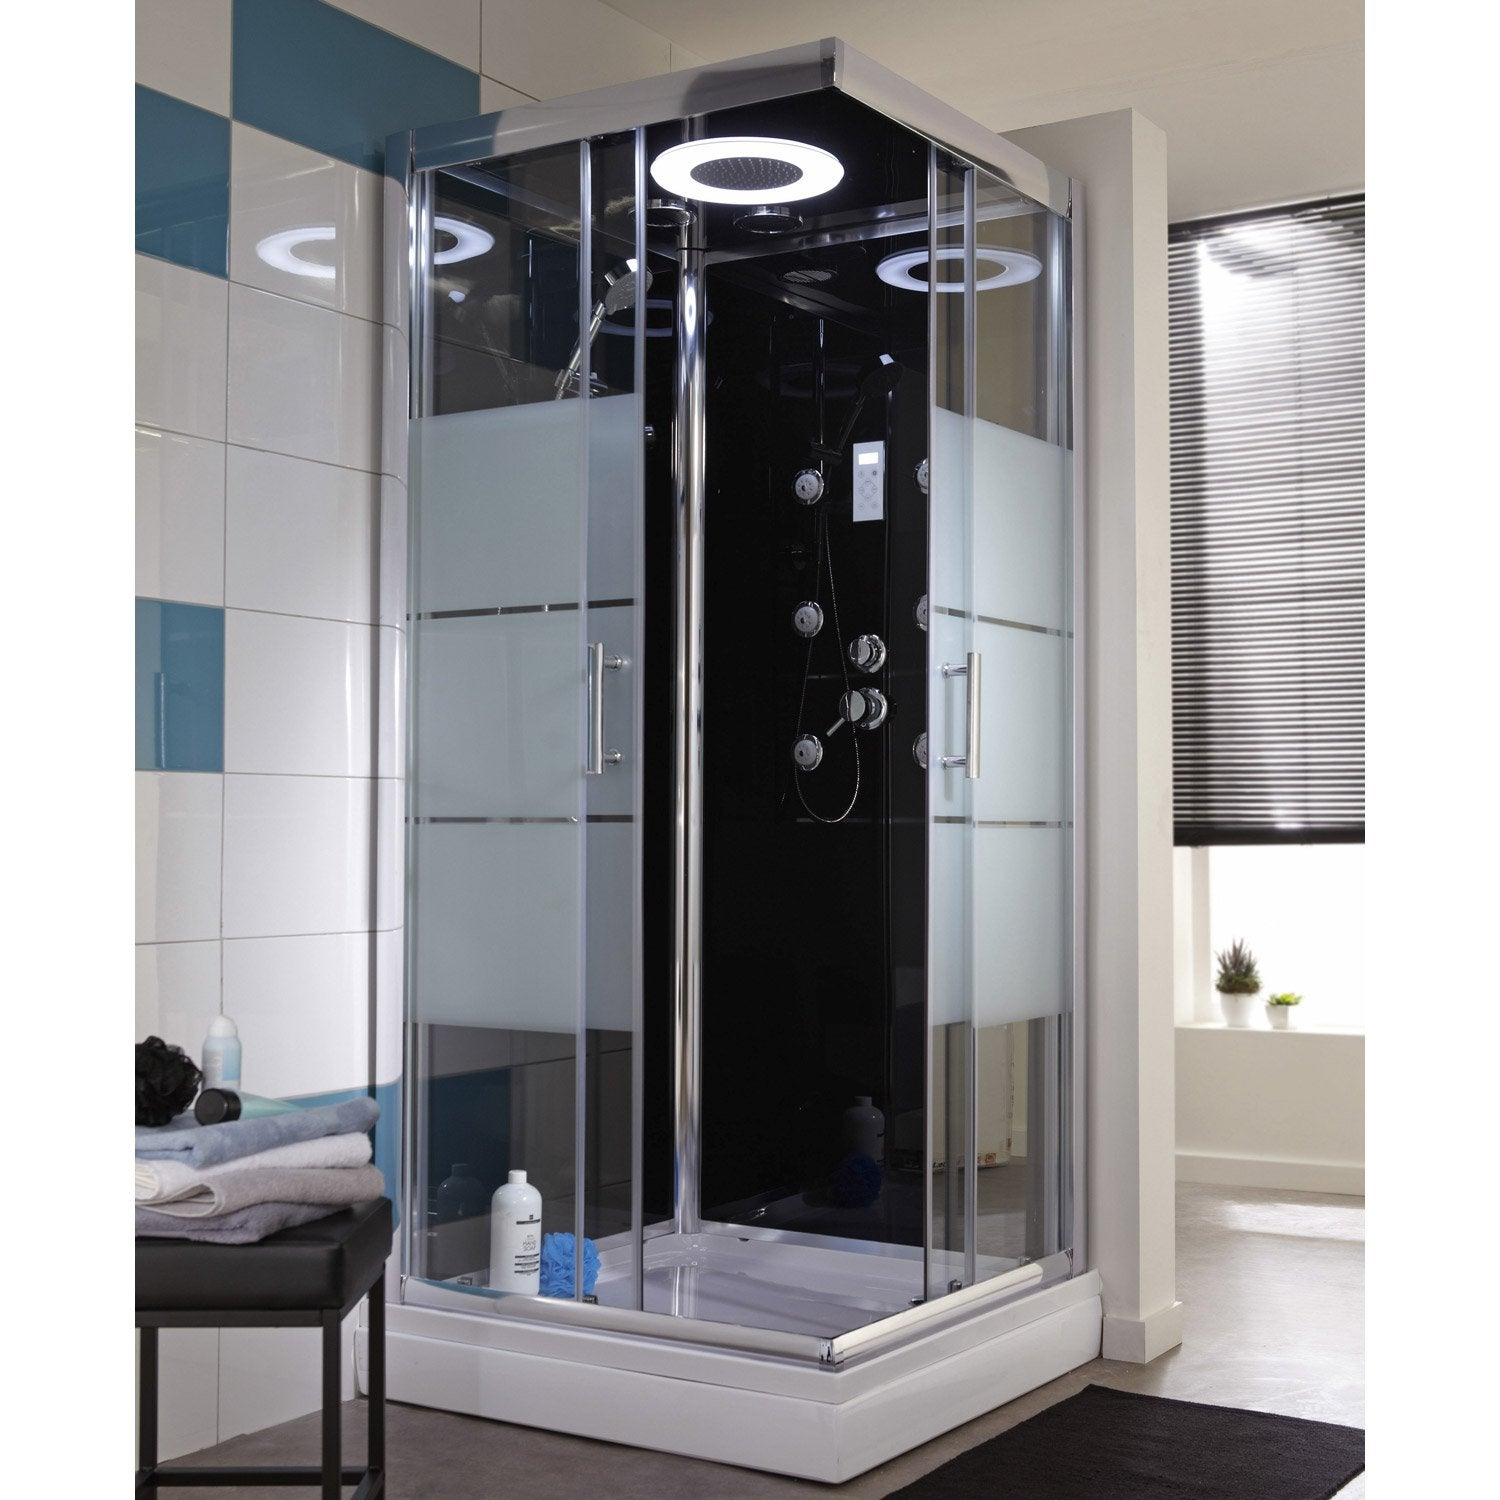 Cabine de douche carr 90x90 cm optima2 noire leroy merlin for Carrelage douche leroy merlin